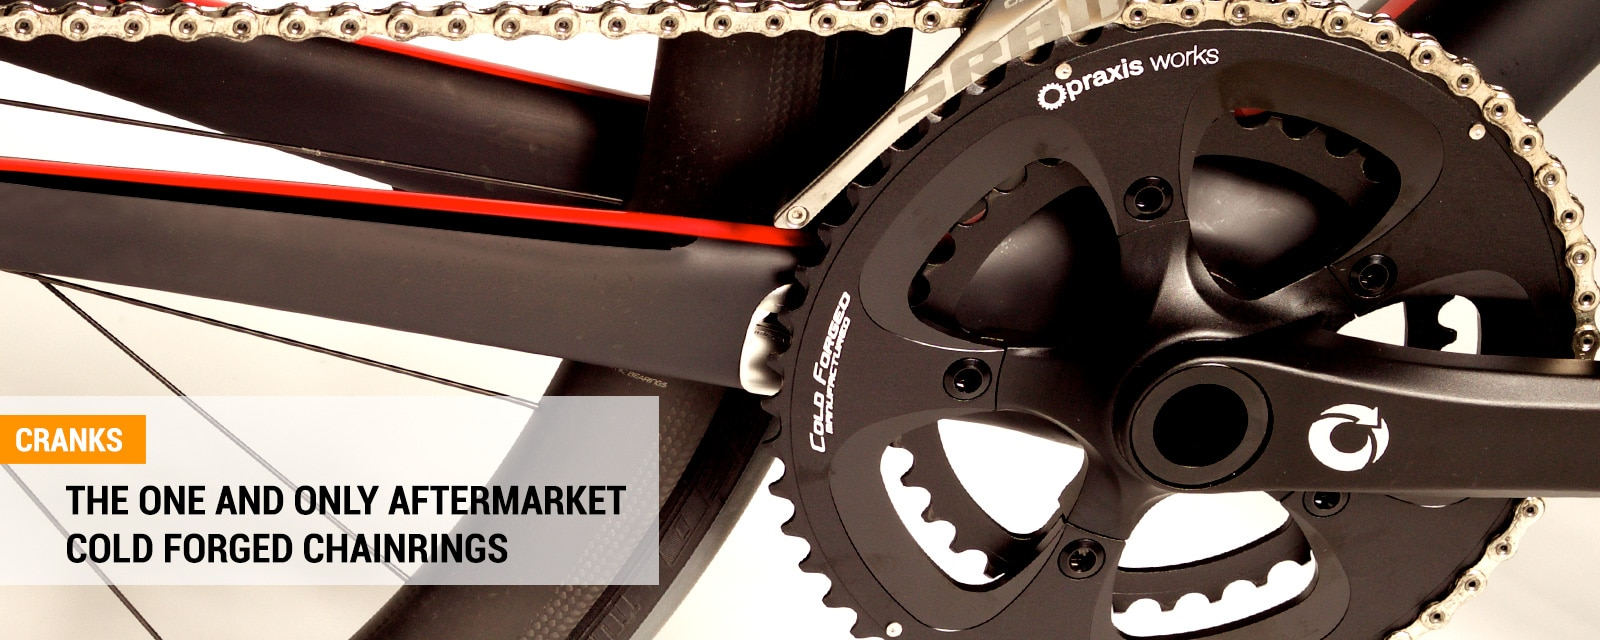 praxis_works_aftermarket_chainrings-02